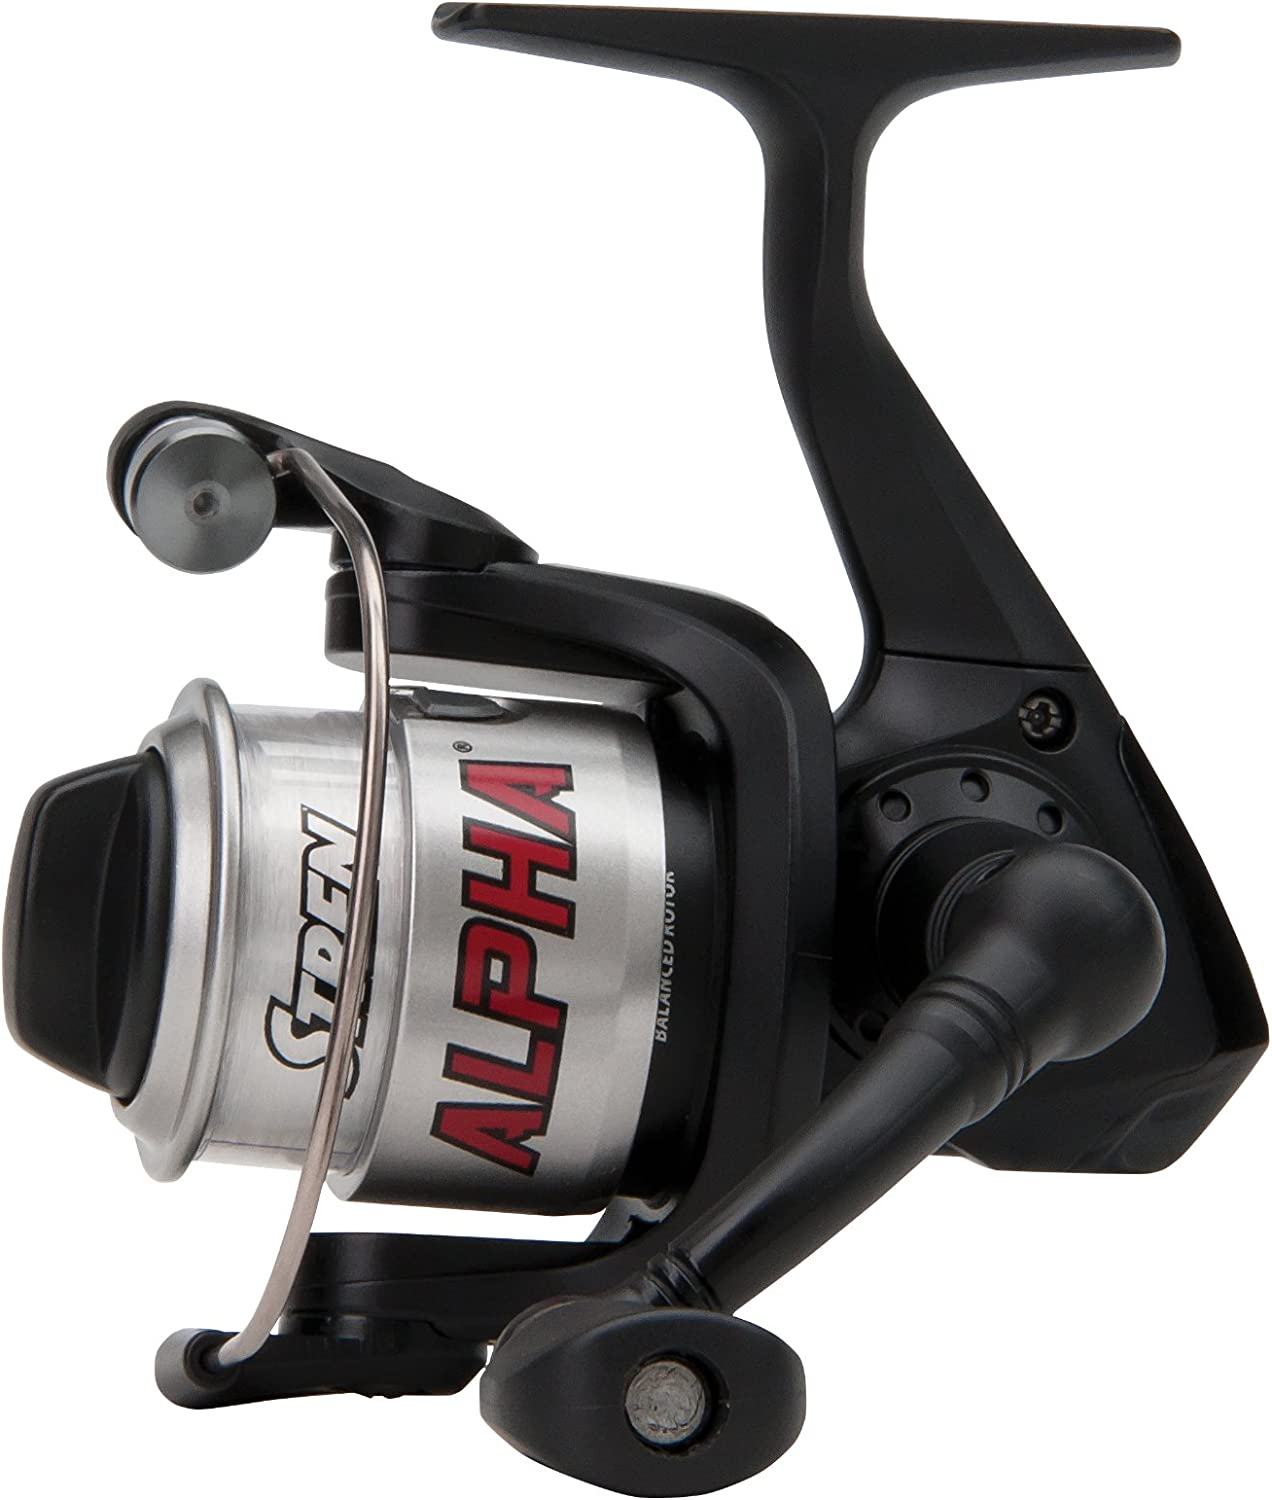 LINE #A160 NEW SHAKESPEARE ALPHA BALL BEARING FISHING REEL WITH 17 LB